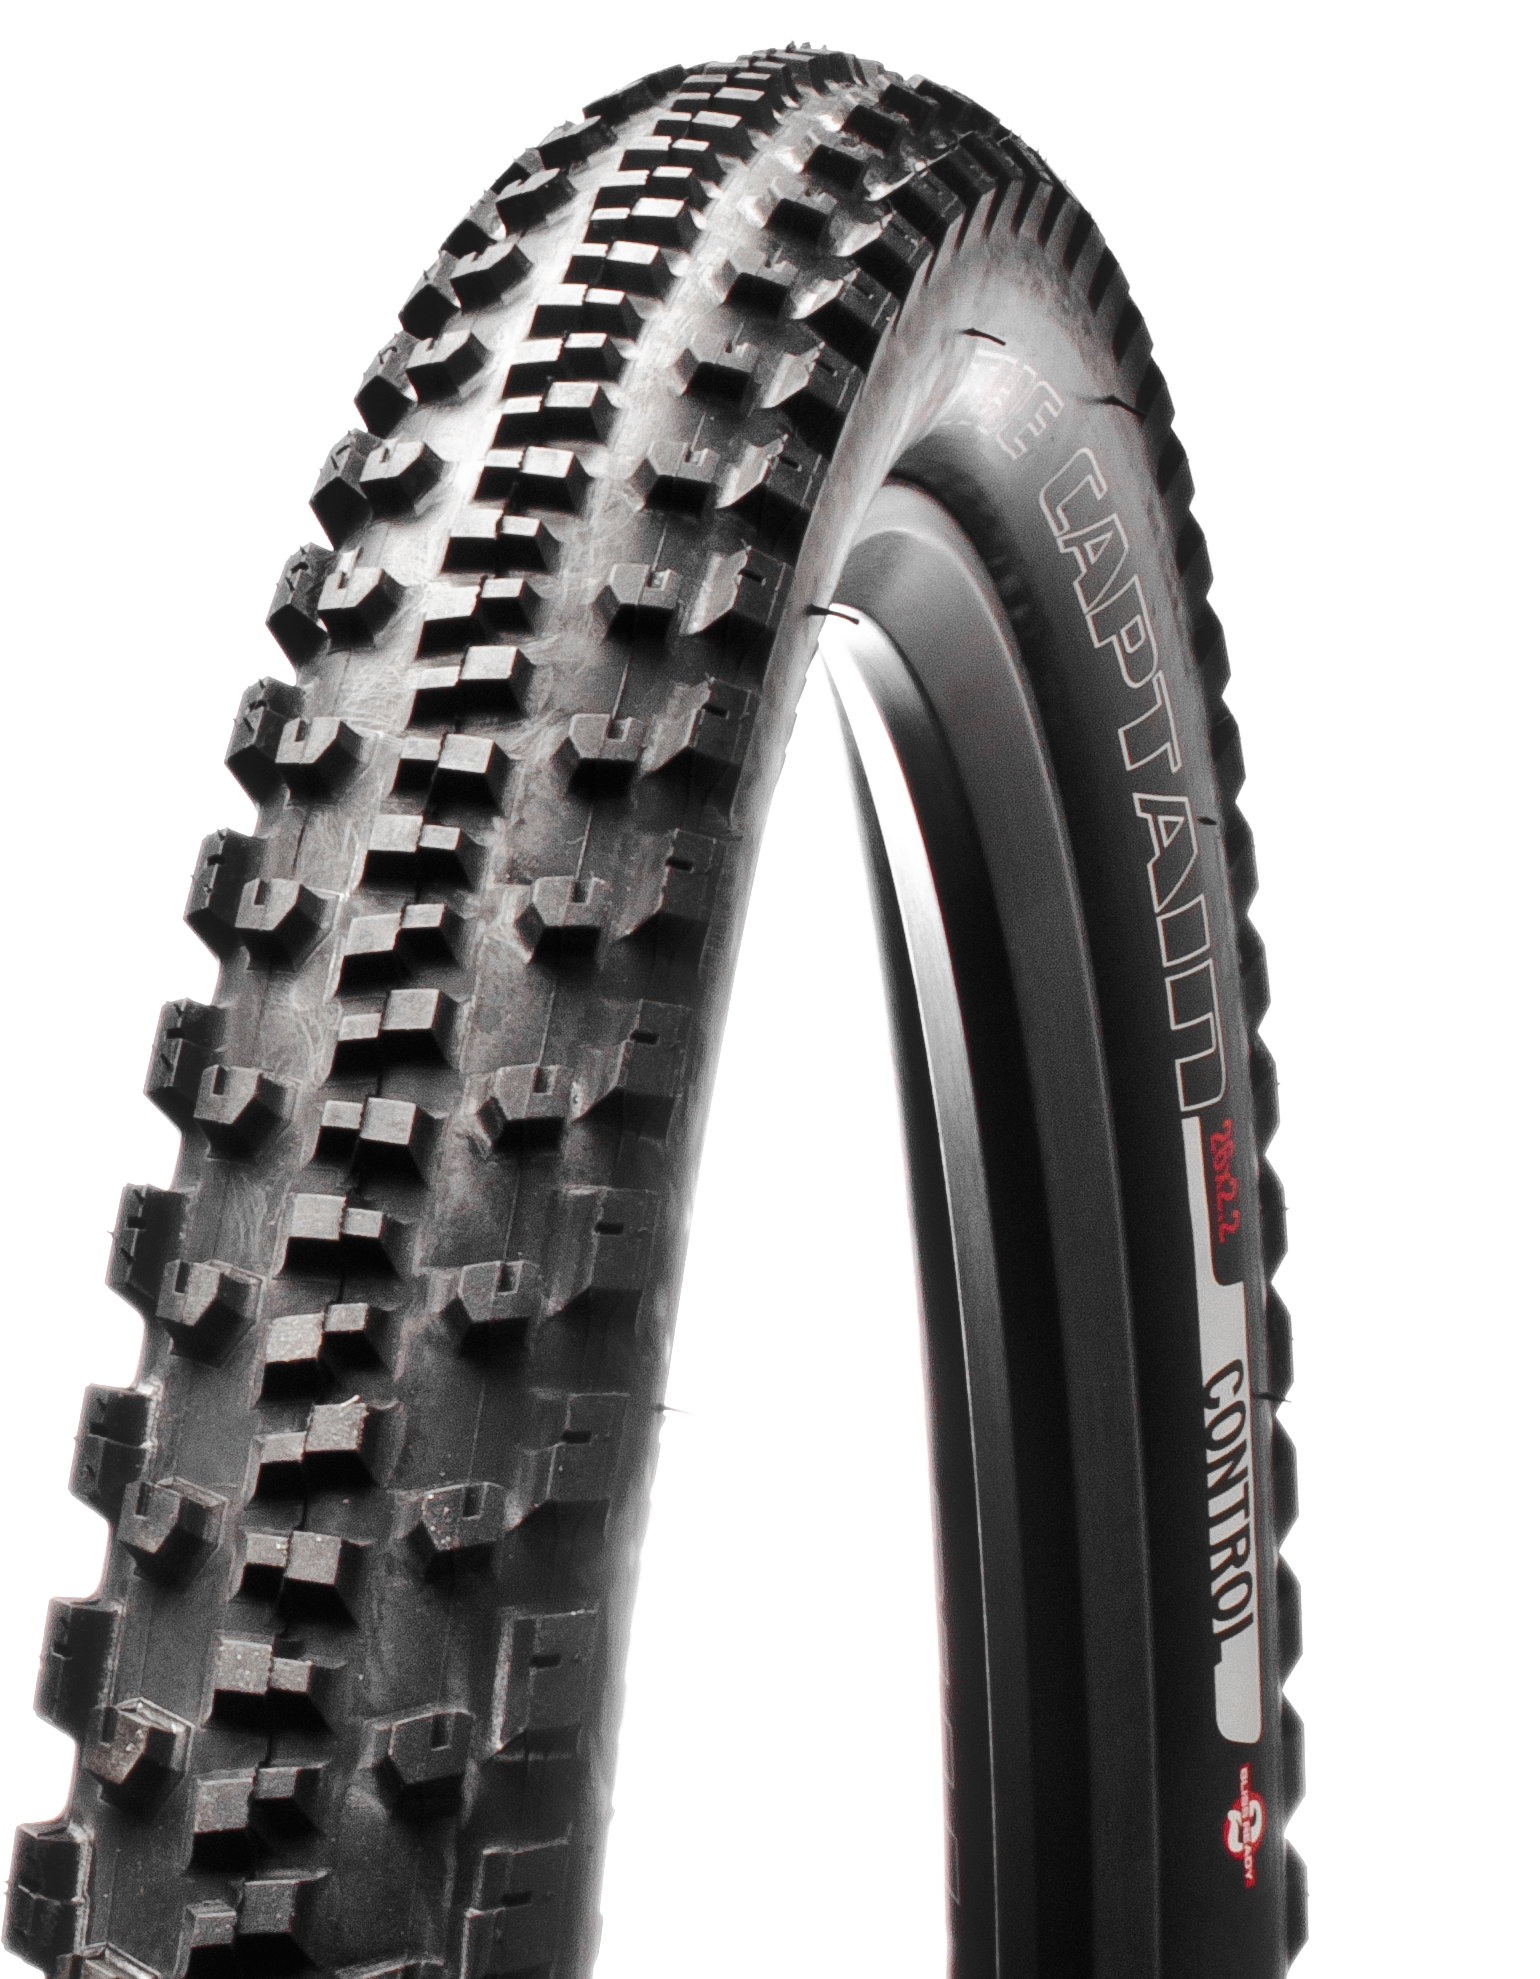 SPECIALIZED THE CAPTAIN SPORT TIRE 29X2.0 - SPECIALIZED THE CAPTAIN SPORT TIRE 29X2.0